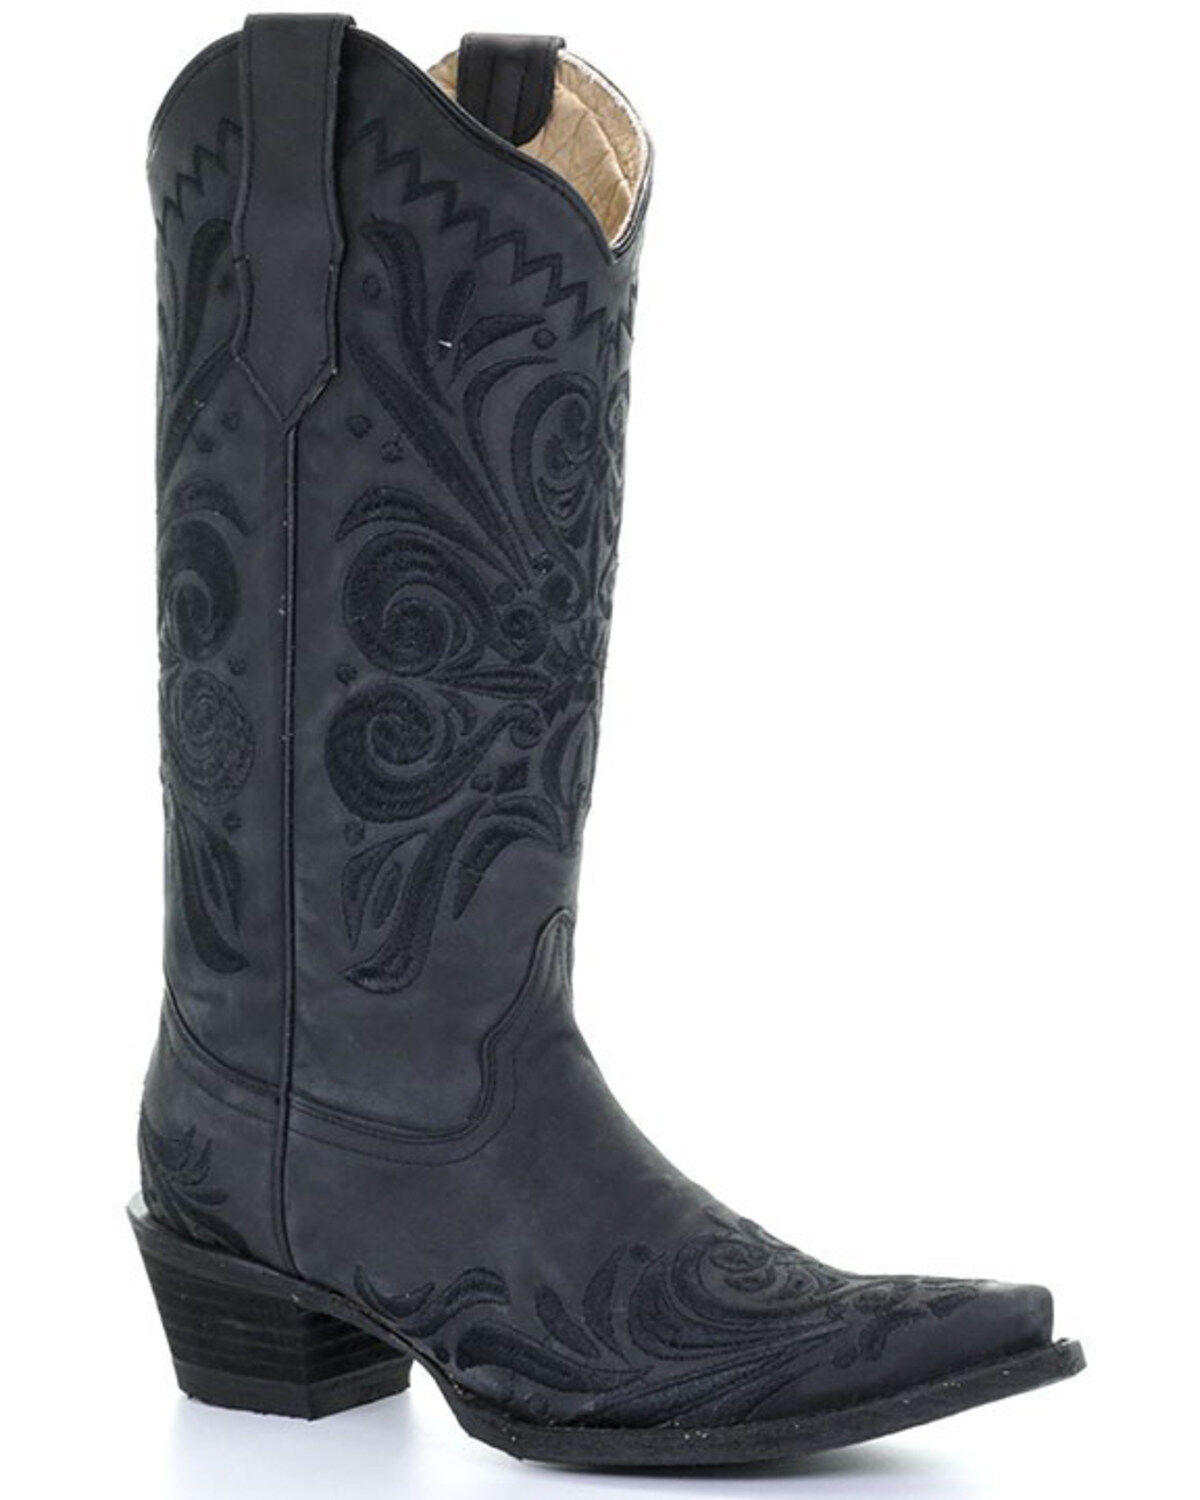 Circle G Womens Cross Embroidered Cowgirl Boot Snip Toe Antique Saddle 6 M US